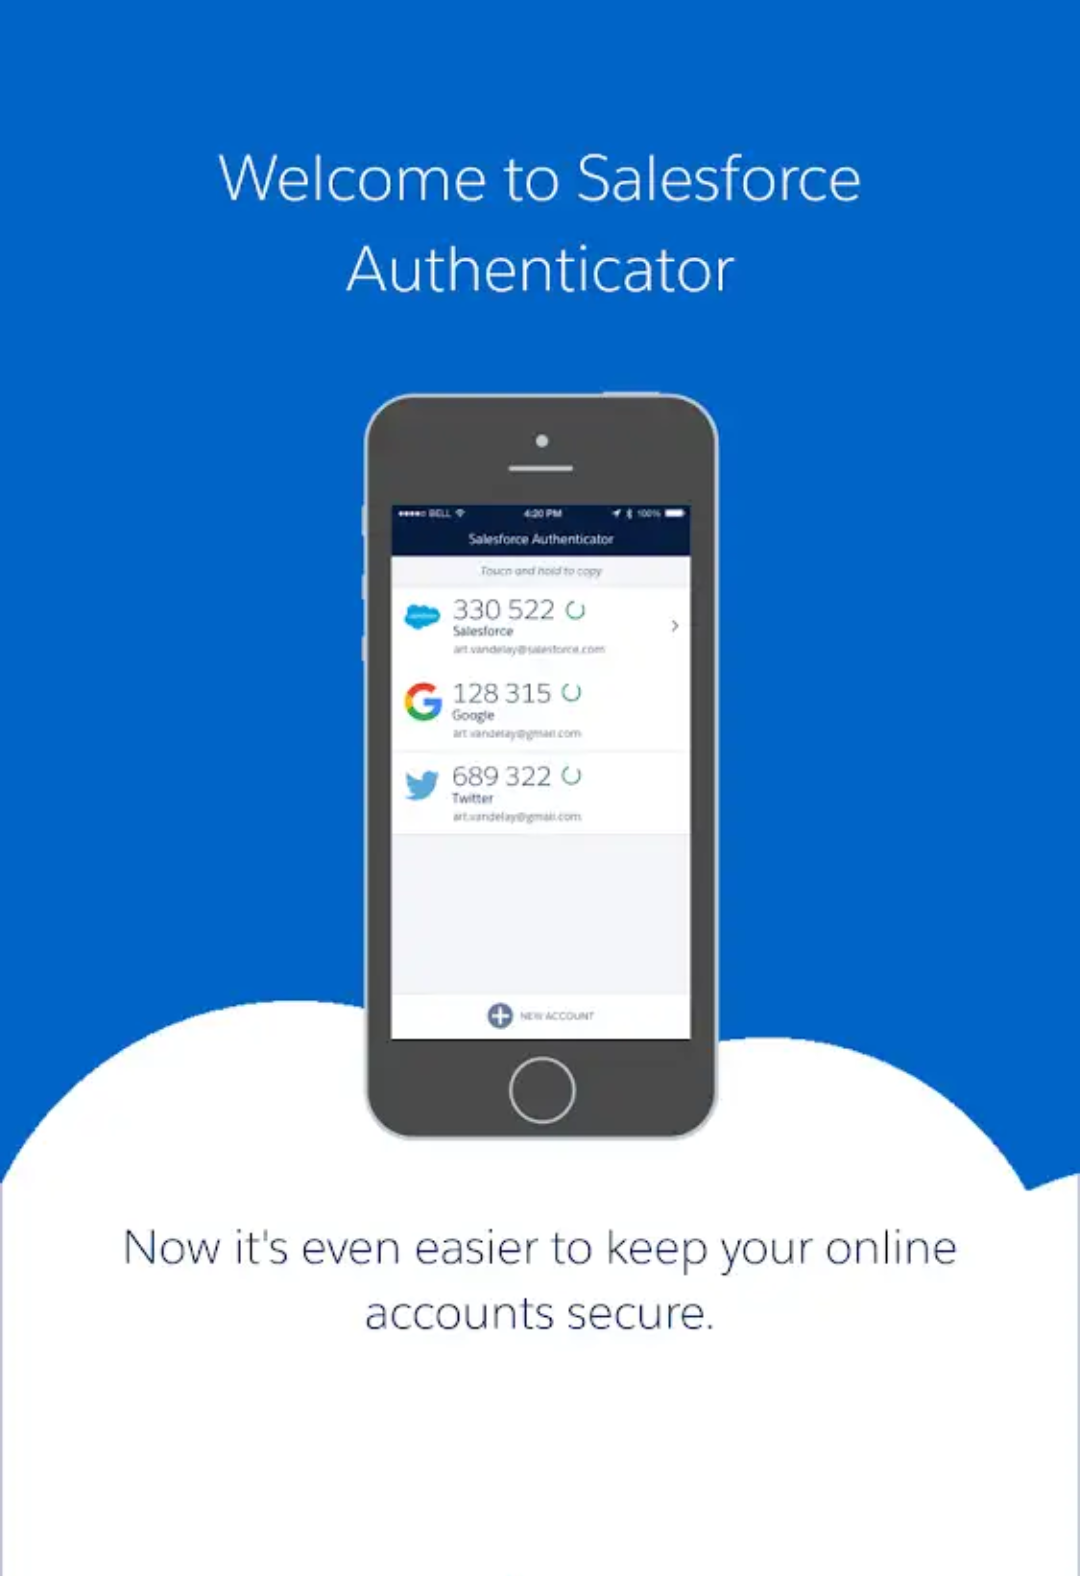 Salesforce Authenticator App